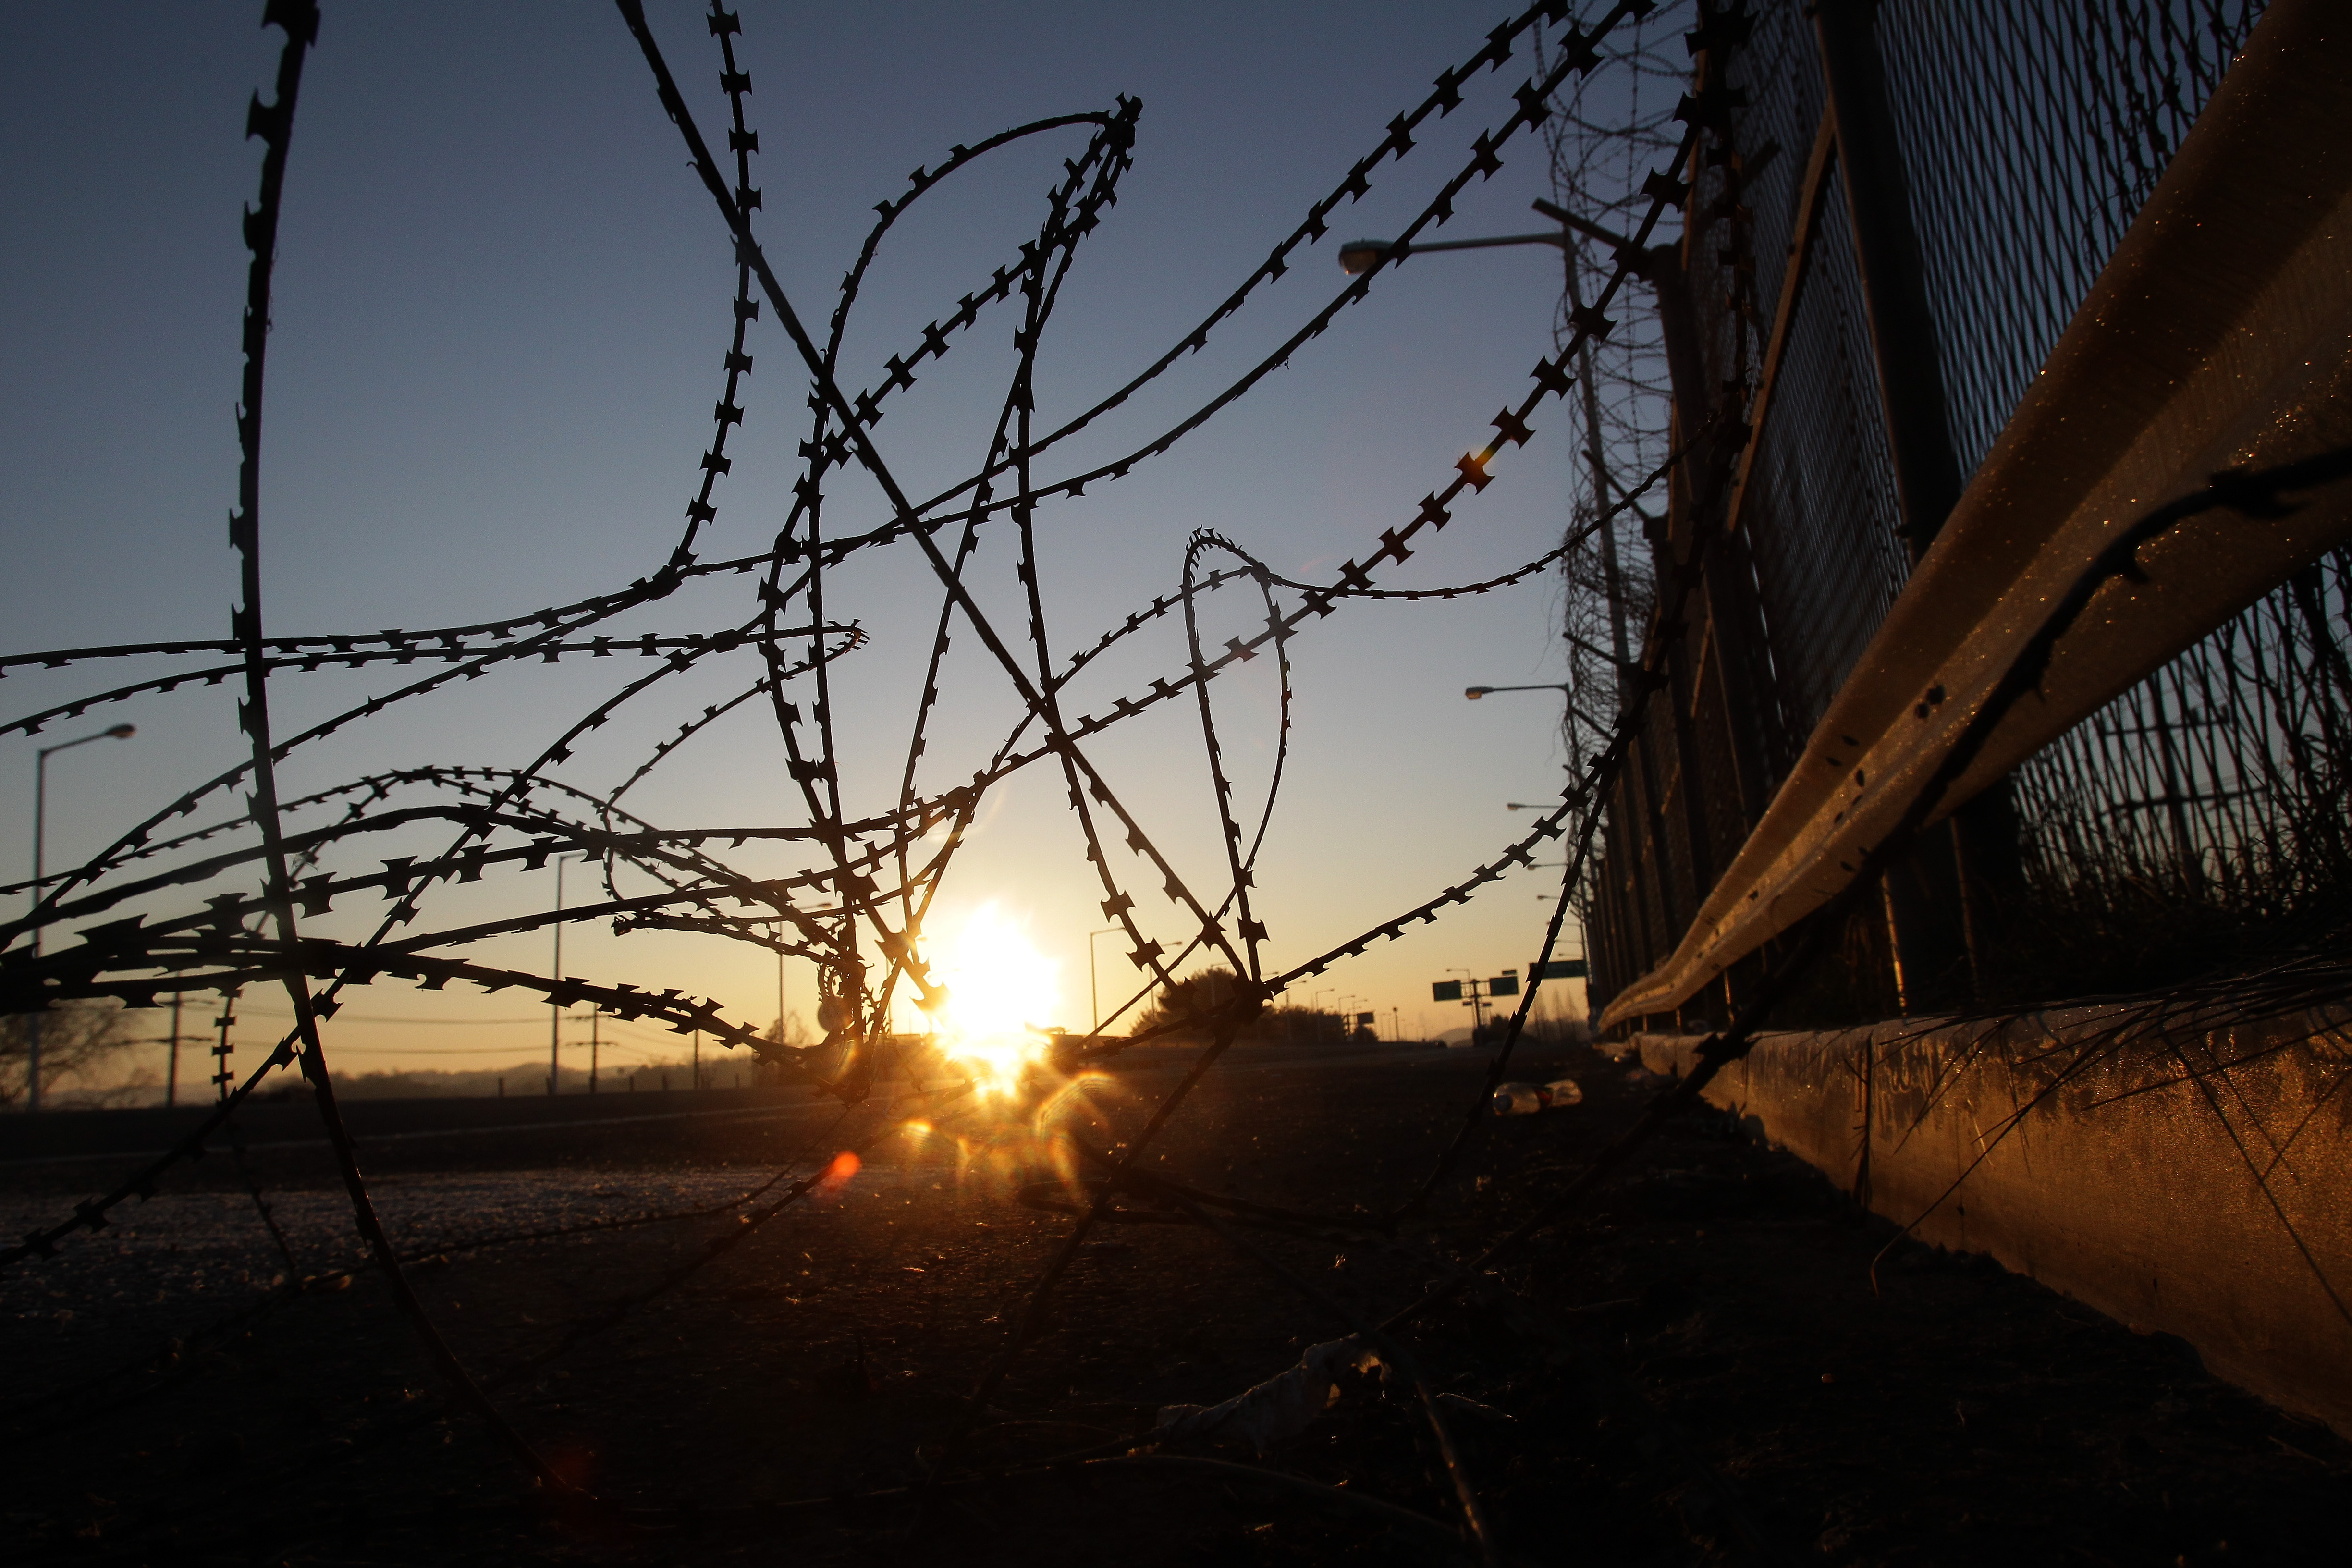 A sunrise is seen through a barbed-wire fence at the Imjingak, near the Demilitarized zone separating South and North Korea in Paju, South Korea, on Jan. 8, 2016.